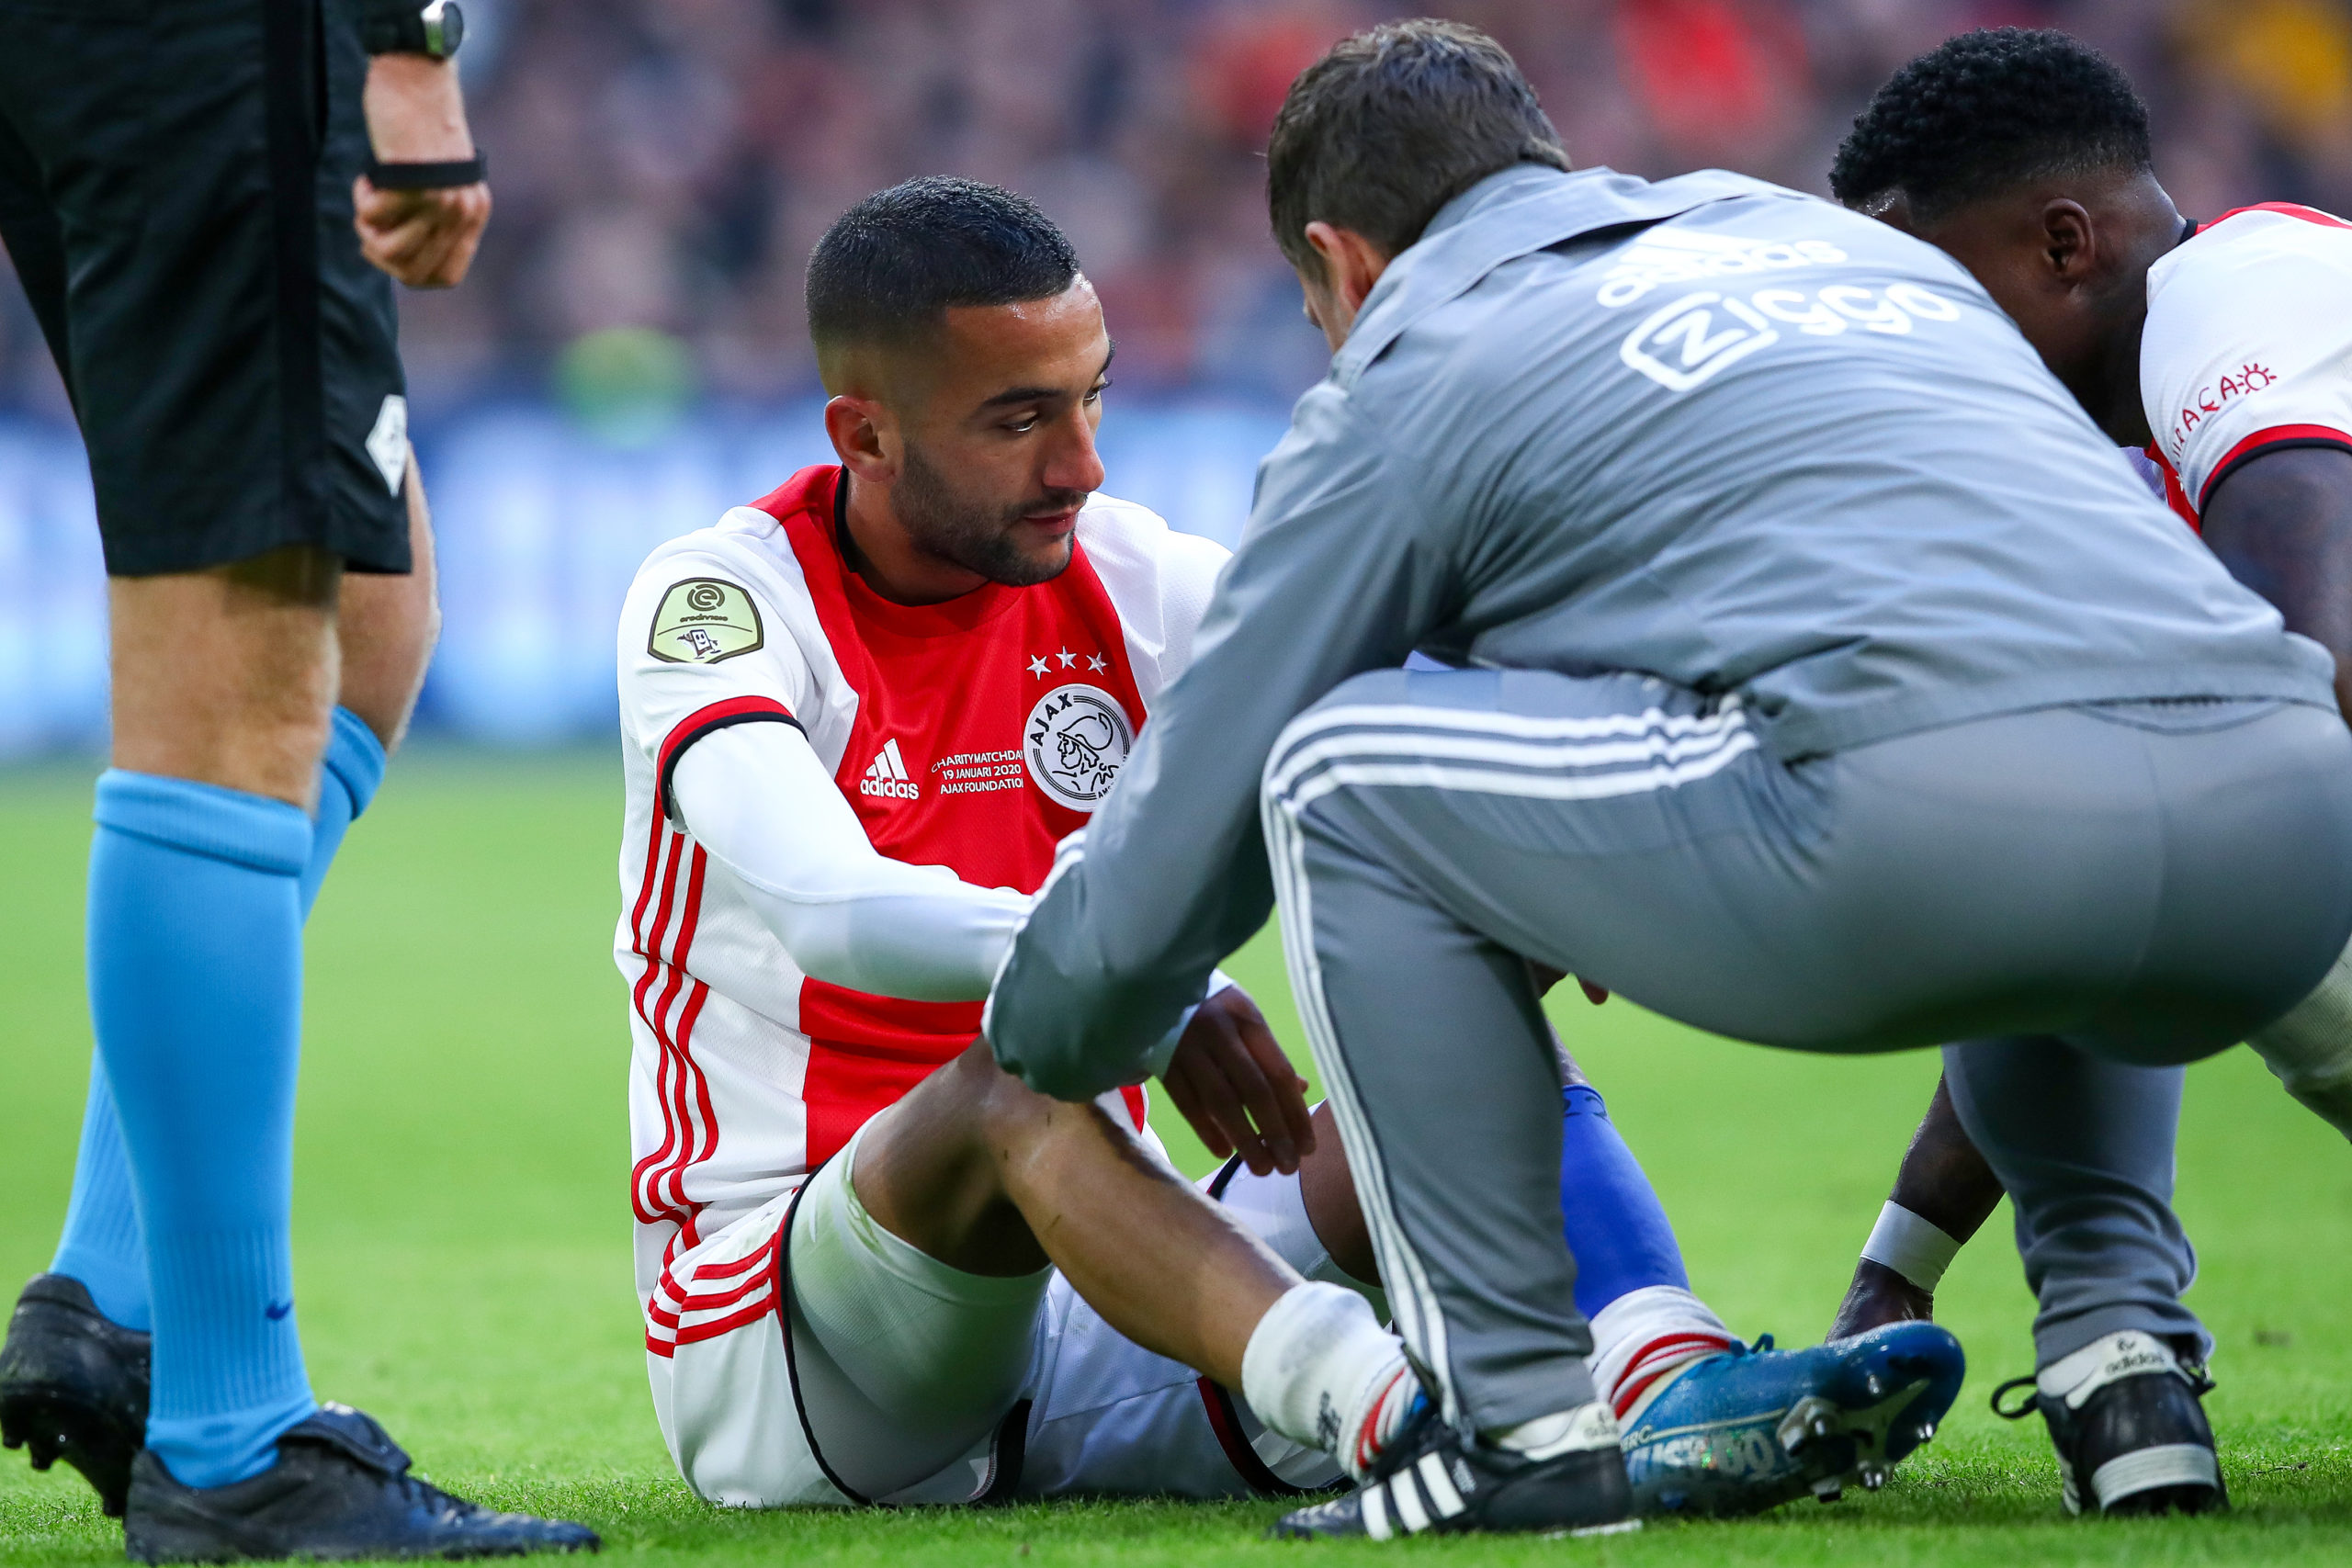 Hakim Ziyech To Miss At Least Groningen And Psv Games Out For 2 4 Weeks All About Ajax